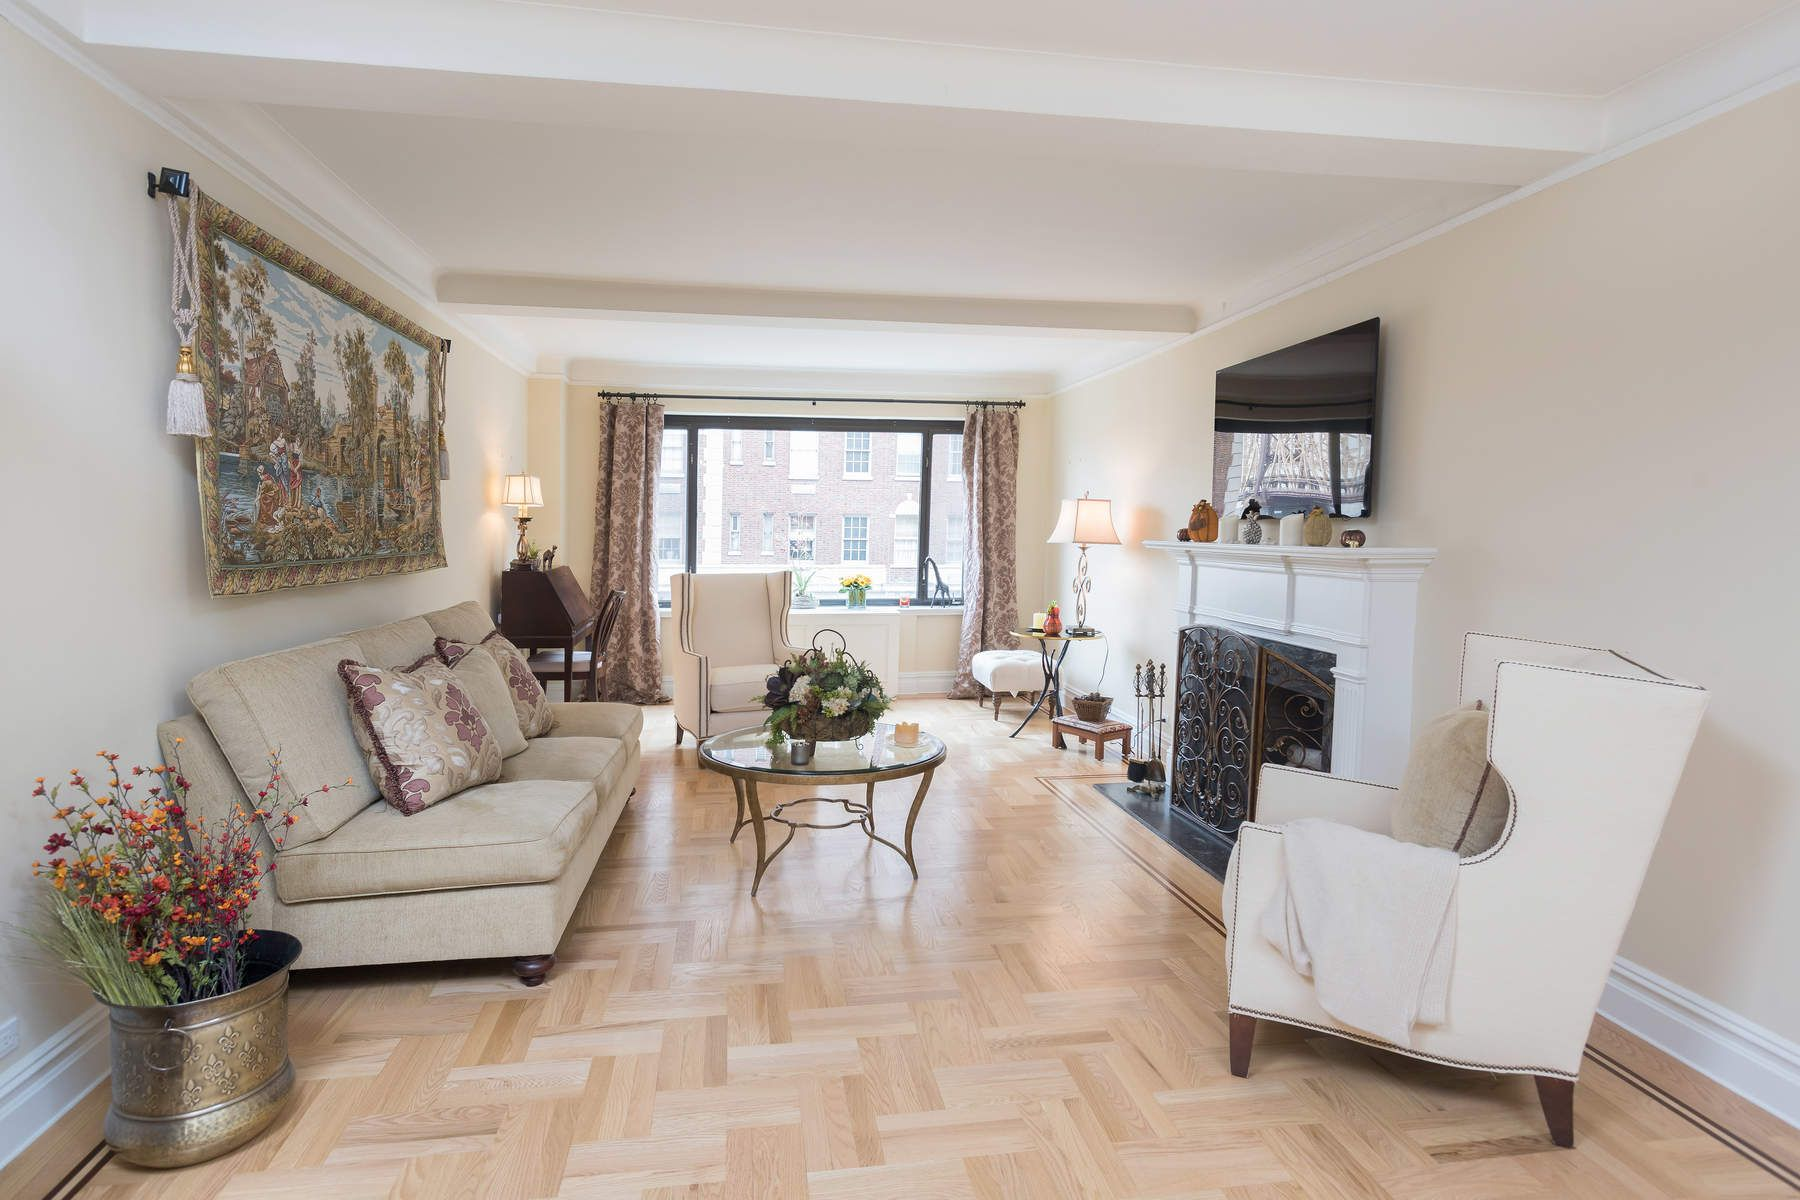 Co-op for Sale at Light-Filled Living on Sutton Pl South 2 Sutton Place South Apt 8DS, Sutton Place, New York, New York, 10022 United States